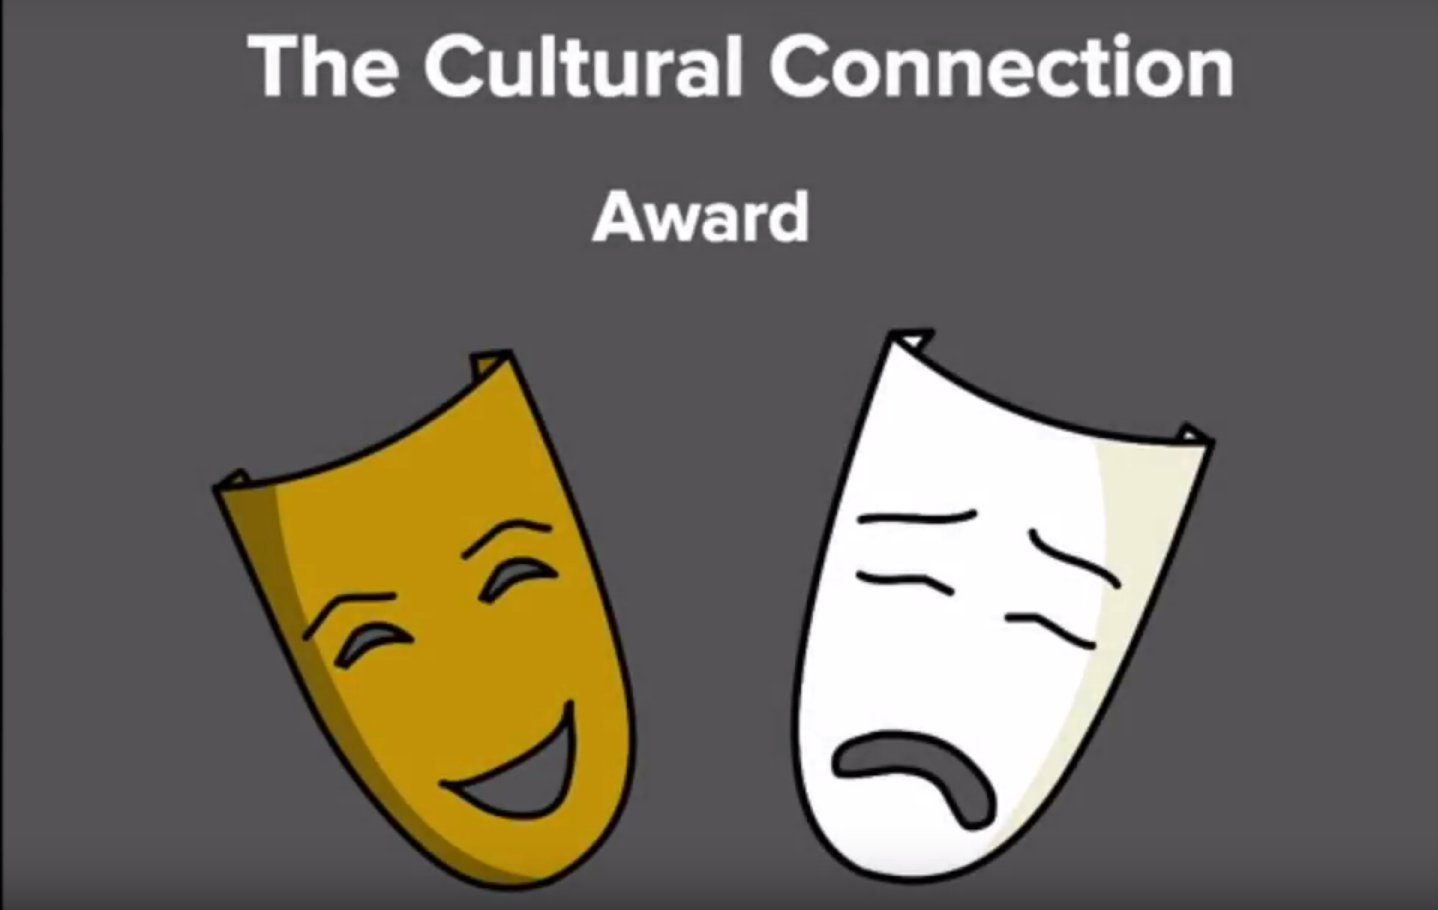 The Cultural Connection Award ISTE 2017